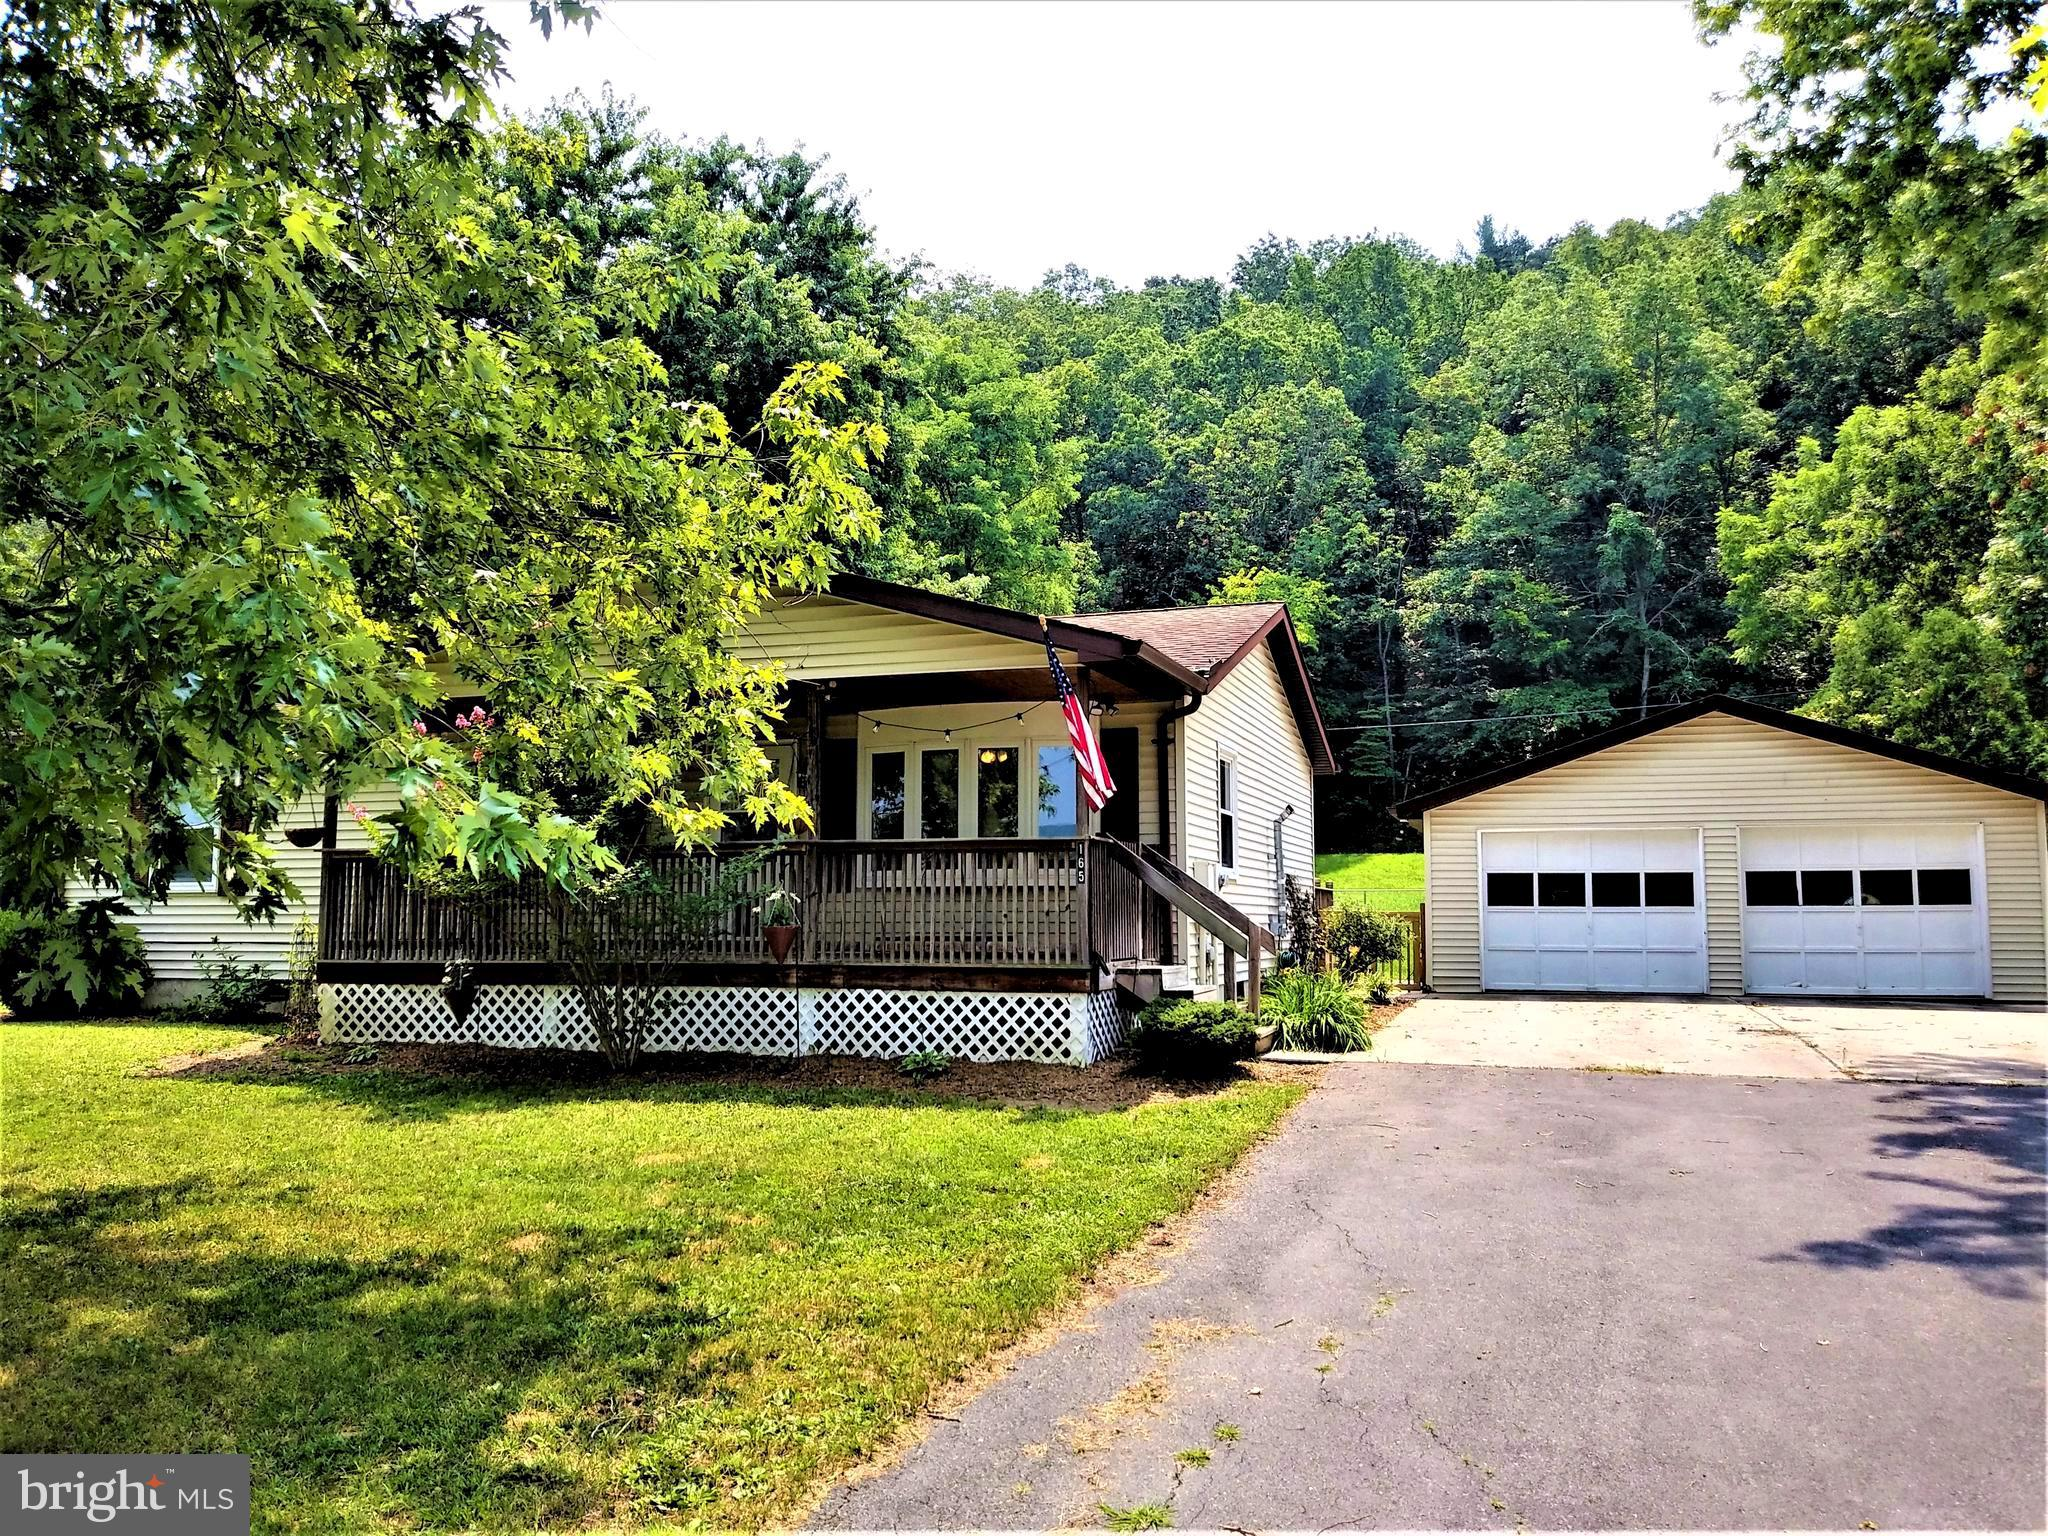 Well cared for home in quiet Wardensville with mountain views. Special features include: front and back porches, 2-car garage, newer wood floors, modern stainless appliances, pantry, large fenced back yard, public water and sewer, multiple heat sources, and paved driveway. Only 35 minutes from Winchester.  Short distance to town to the farmer's market, restaurants, shopping, bakery, library, fitness center, town hall, and shops located throughout the town. Near George Washington National Forest, Trout Pond, Warden Lake, and more.